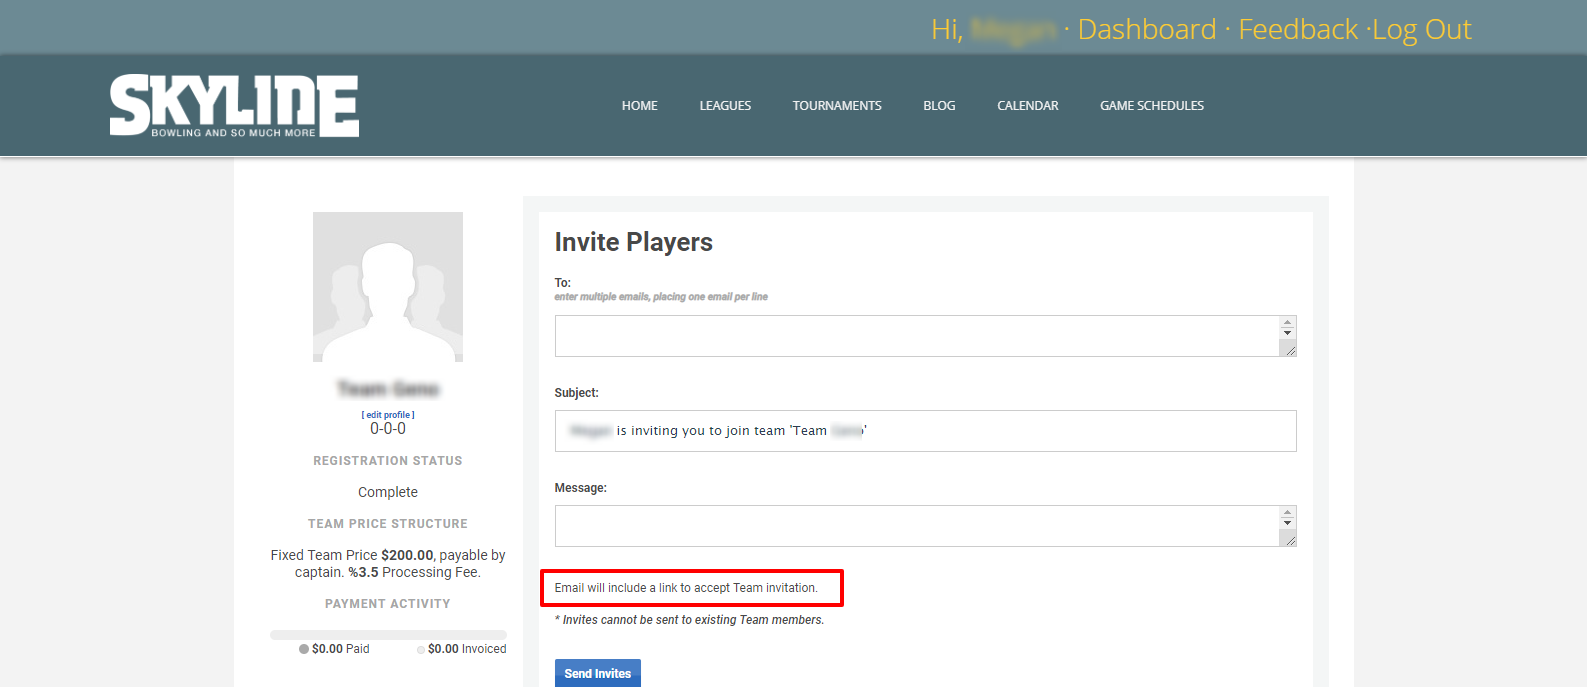 How To Invite Players or Create Roster - Step 6 Form Ask to Accept Invite